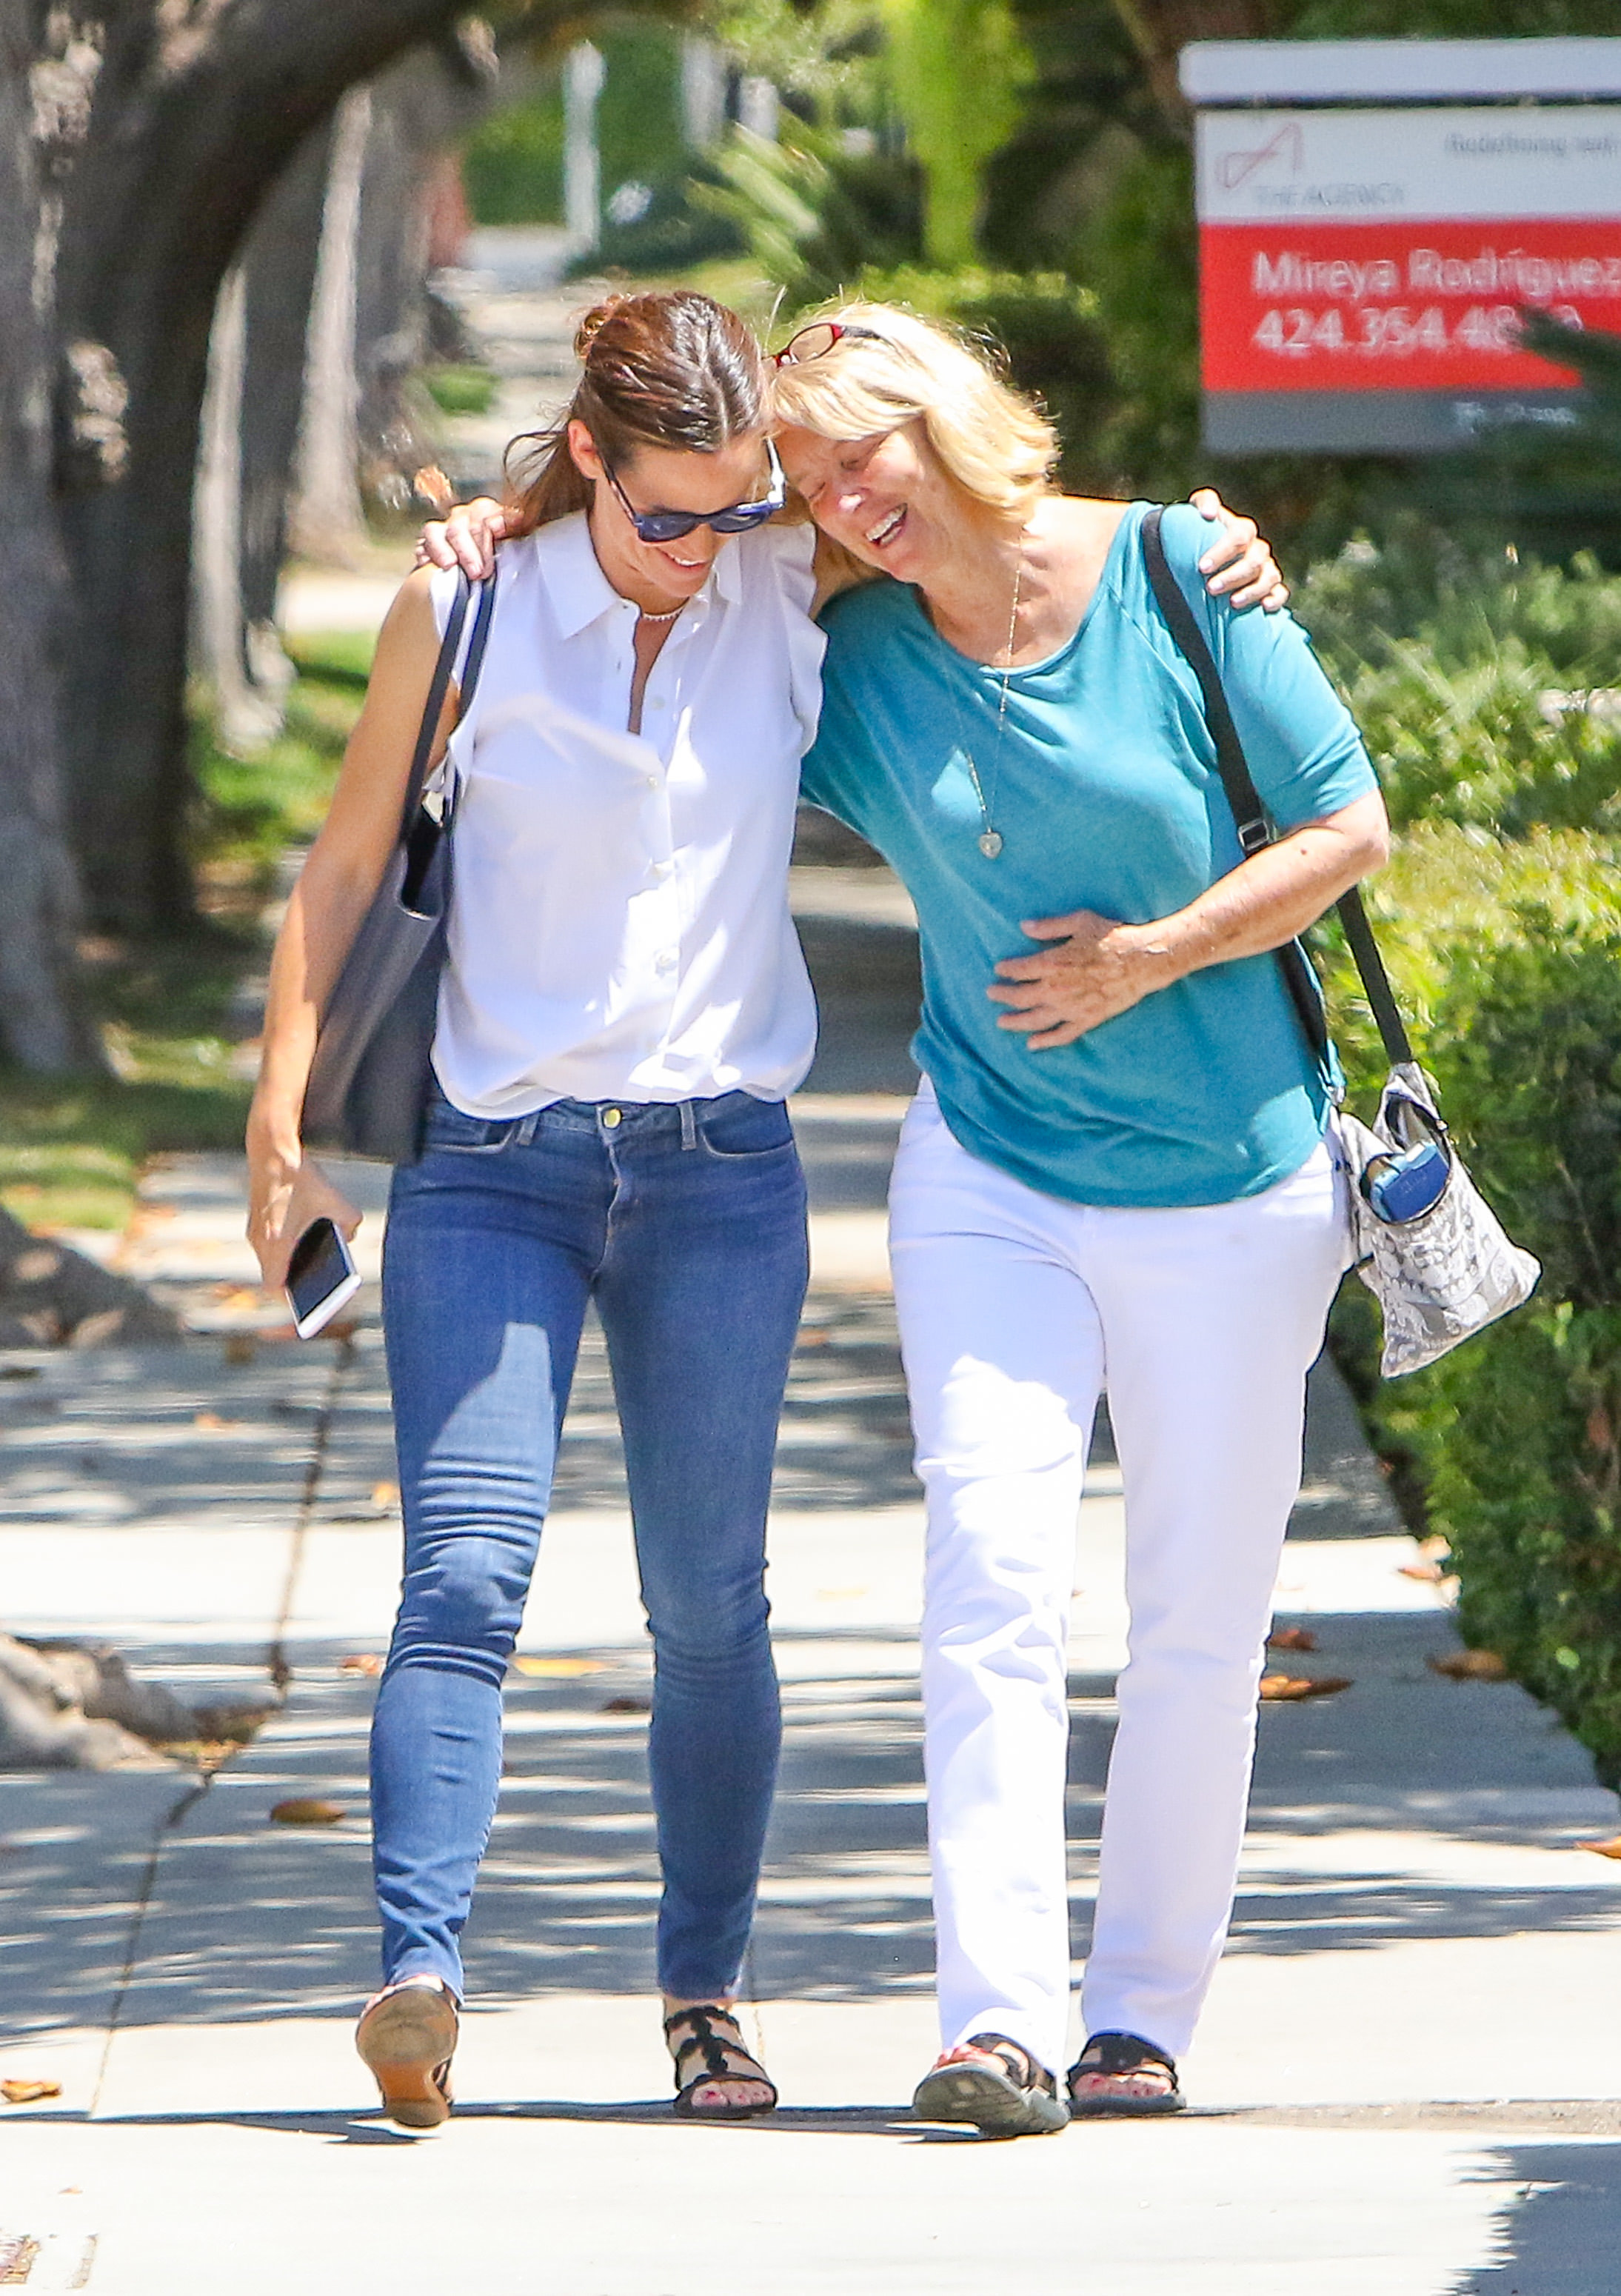 Jennifer Garner and Ben Affleck's mother, Chris Boldt, were spotted looking like two peas in a pod while out in Los Angeles on Aug. 1, 2017.